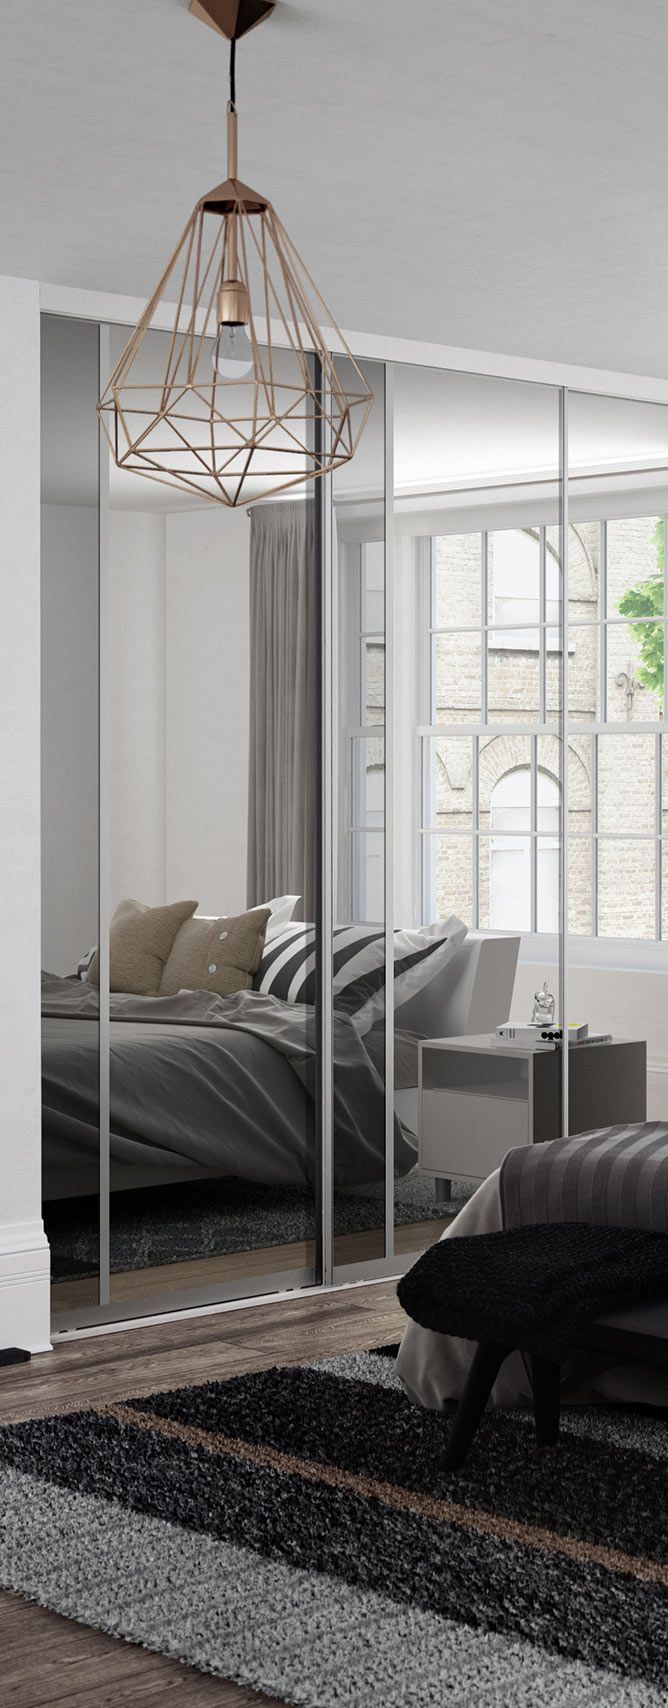 Sliding door s800 - Spaceslide Is The Uk S Number 1 For Made To Measure Sliding Wardrobe Doors And Interiors As Well As Fitted Wardrobes Sliding Doors And Bedroom Furniture